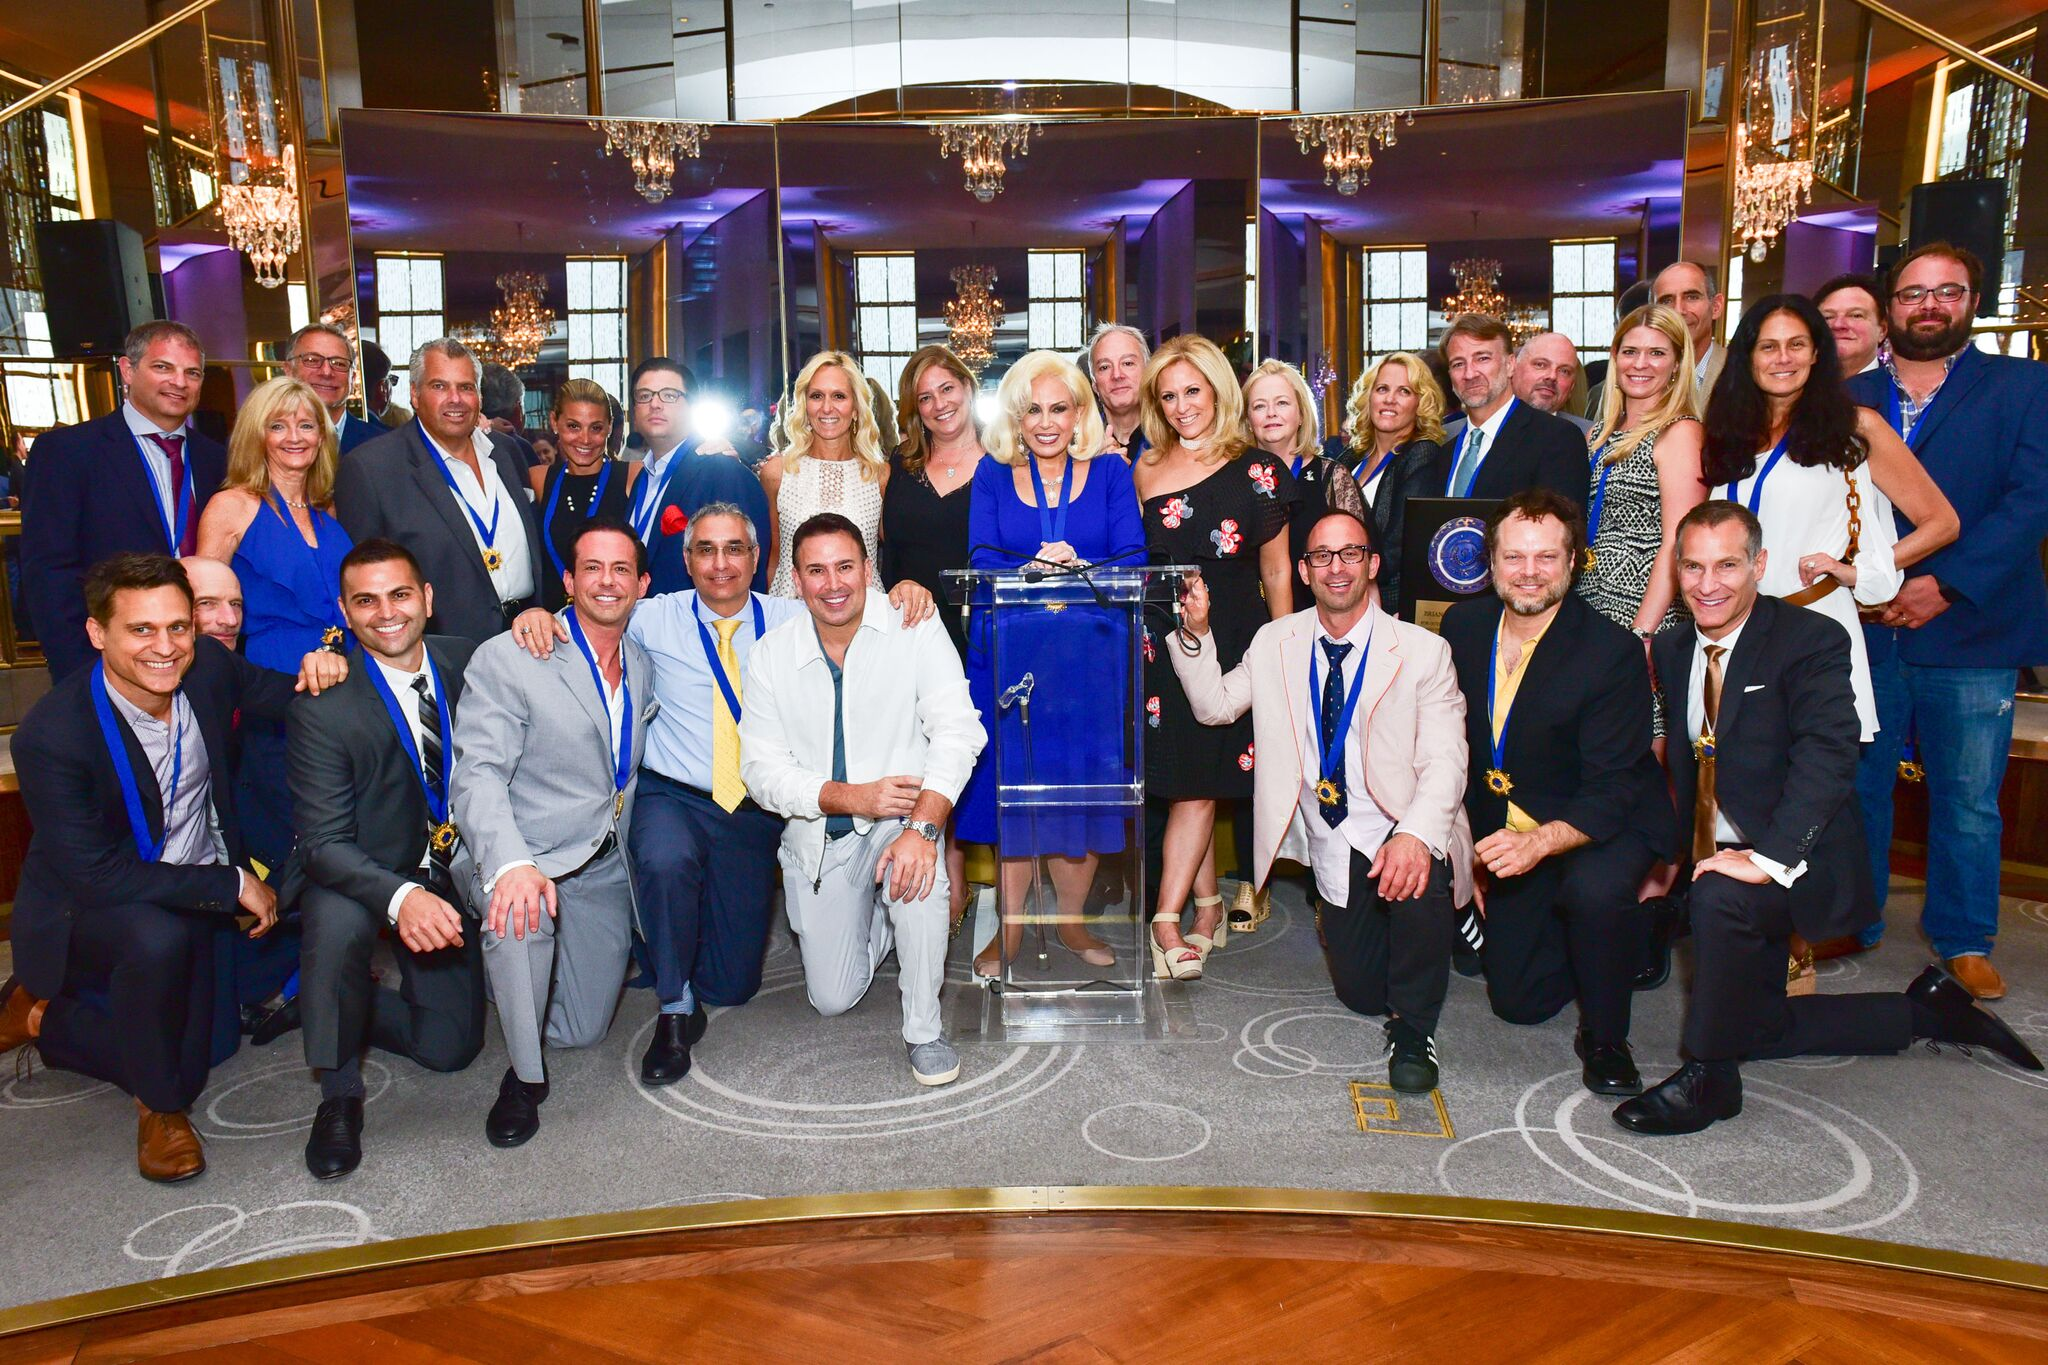 Harriette Rose Katz Hosts The Chosen Few's 2nd Anniversary & New Member Induction Ceremony at The Rainbow Room